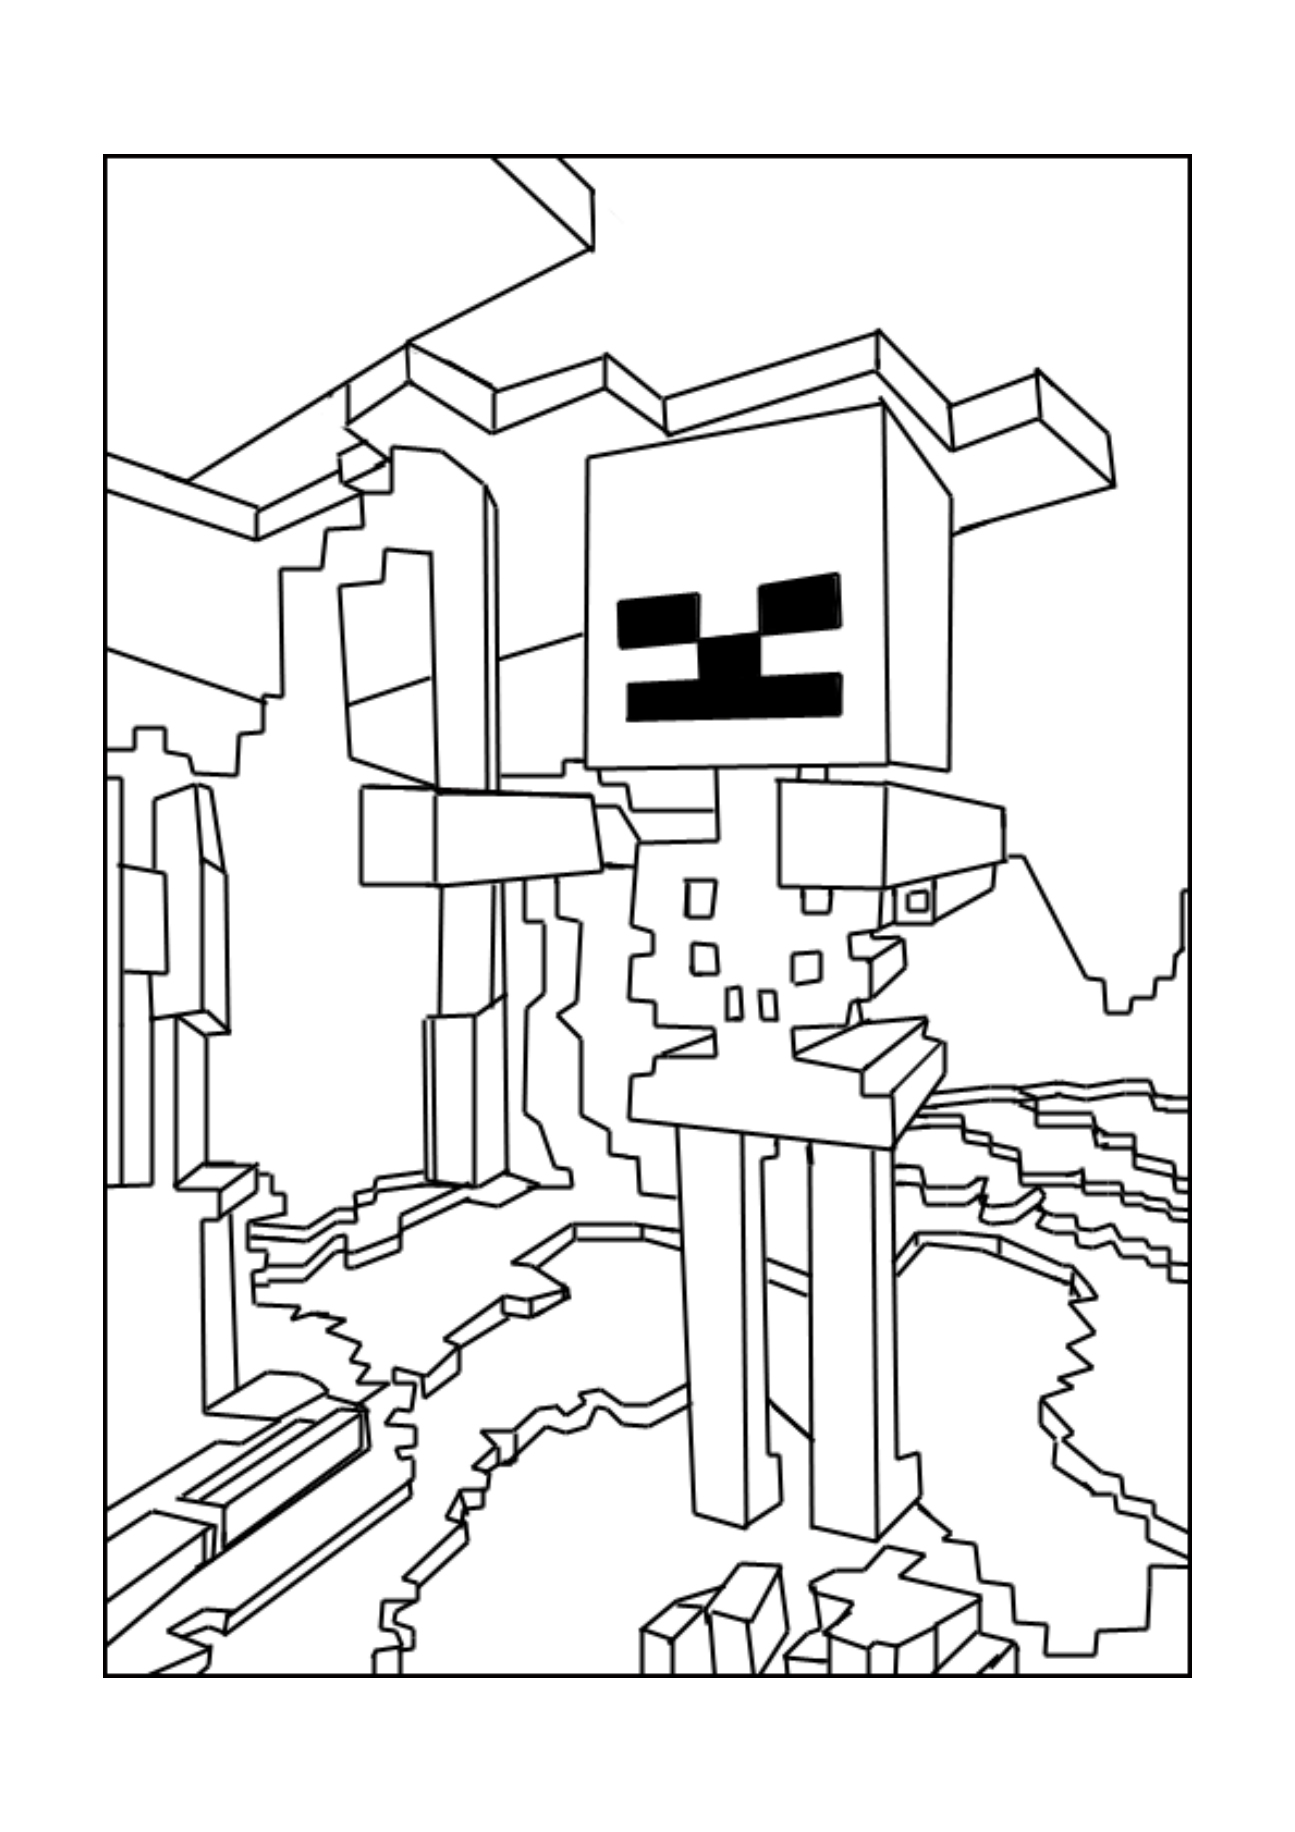 Beautiful Minecraft coloring page to print and color